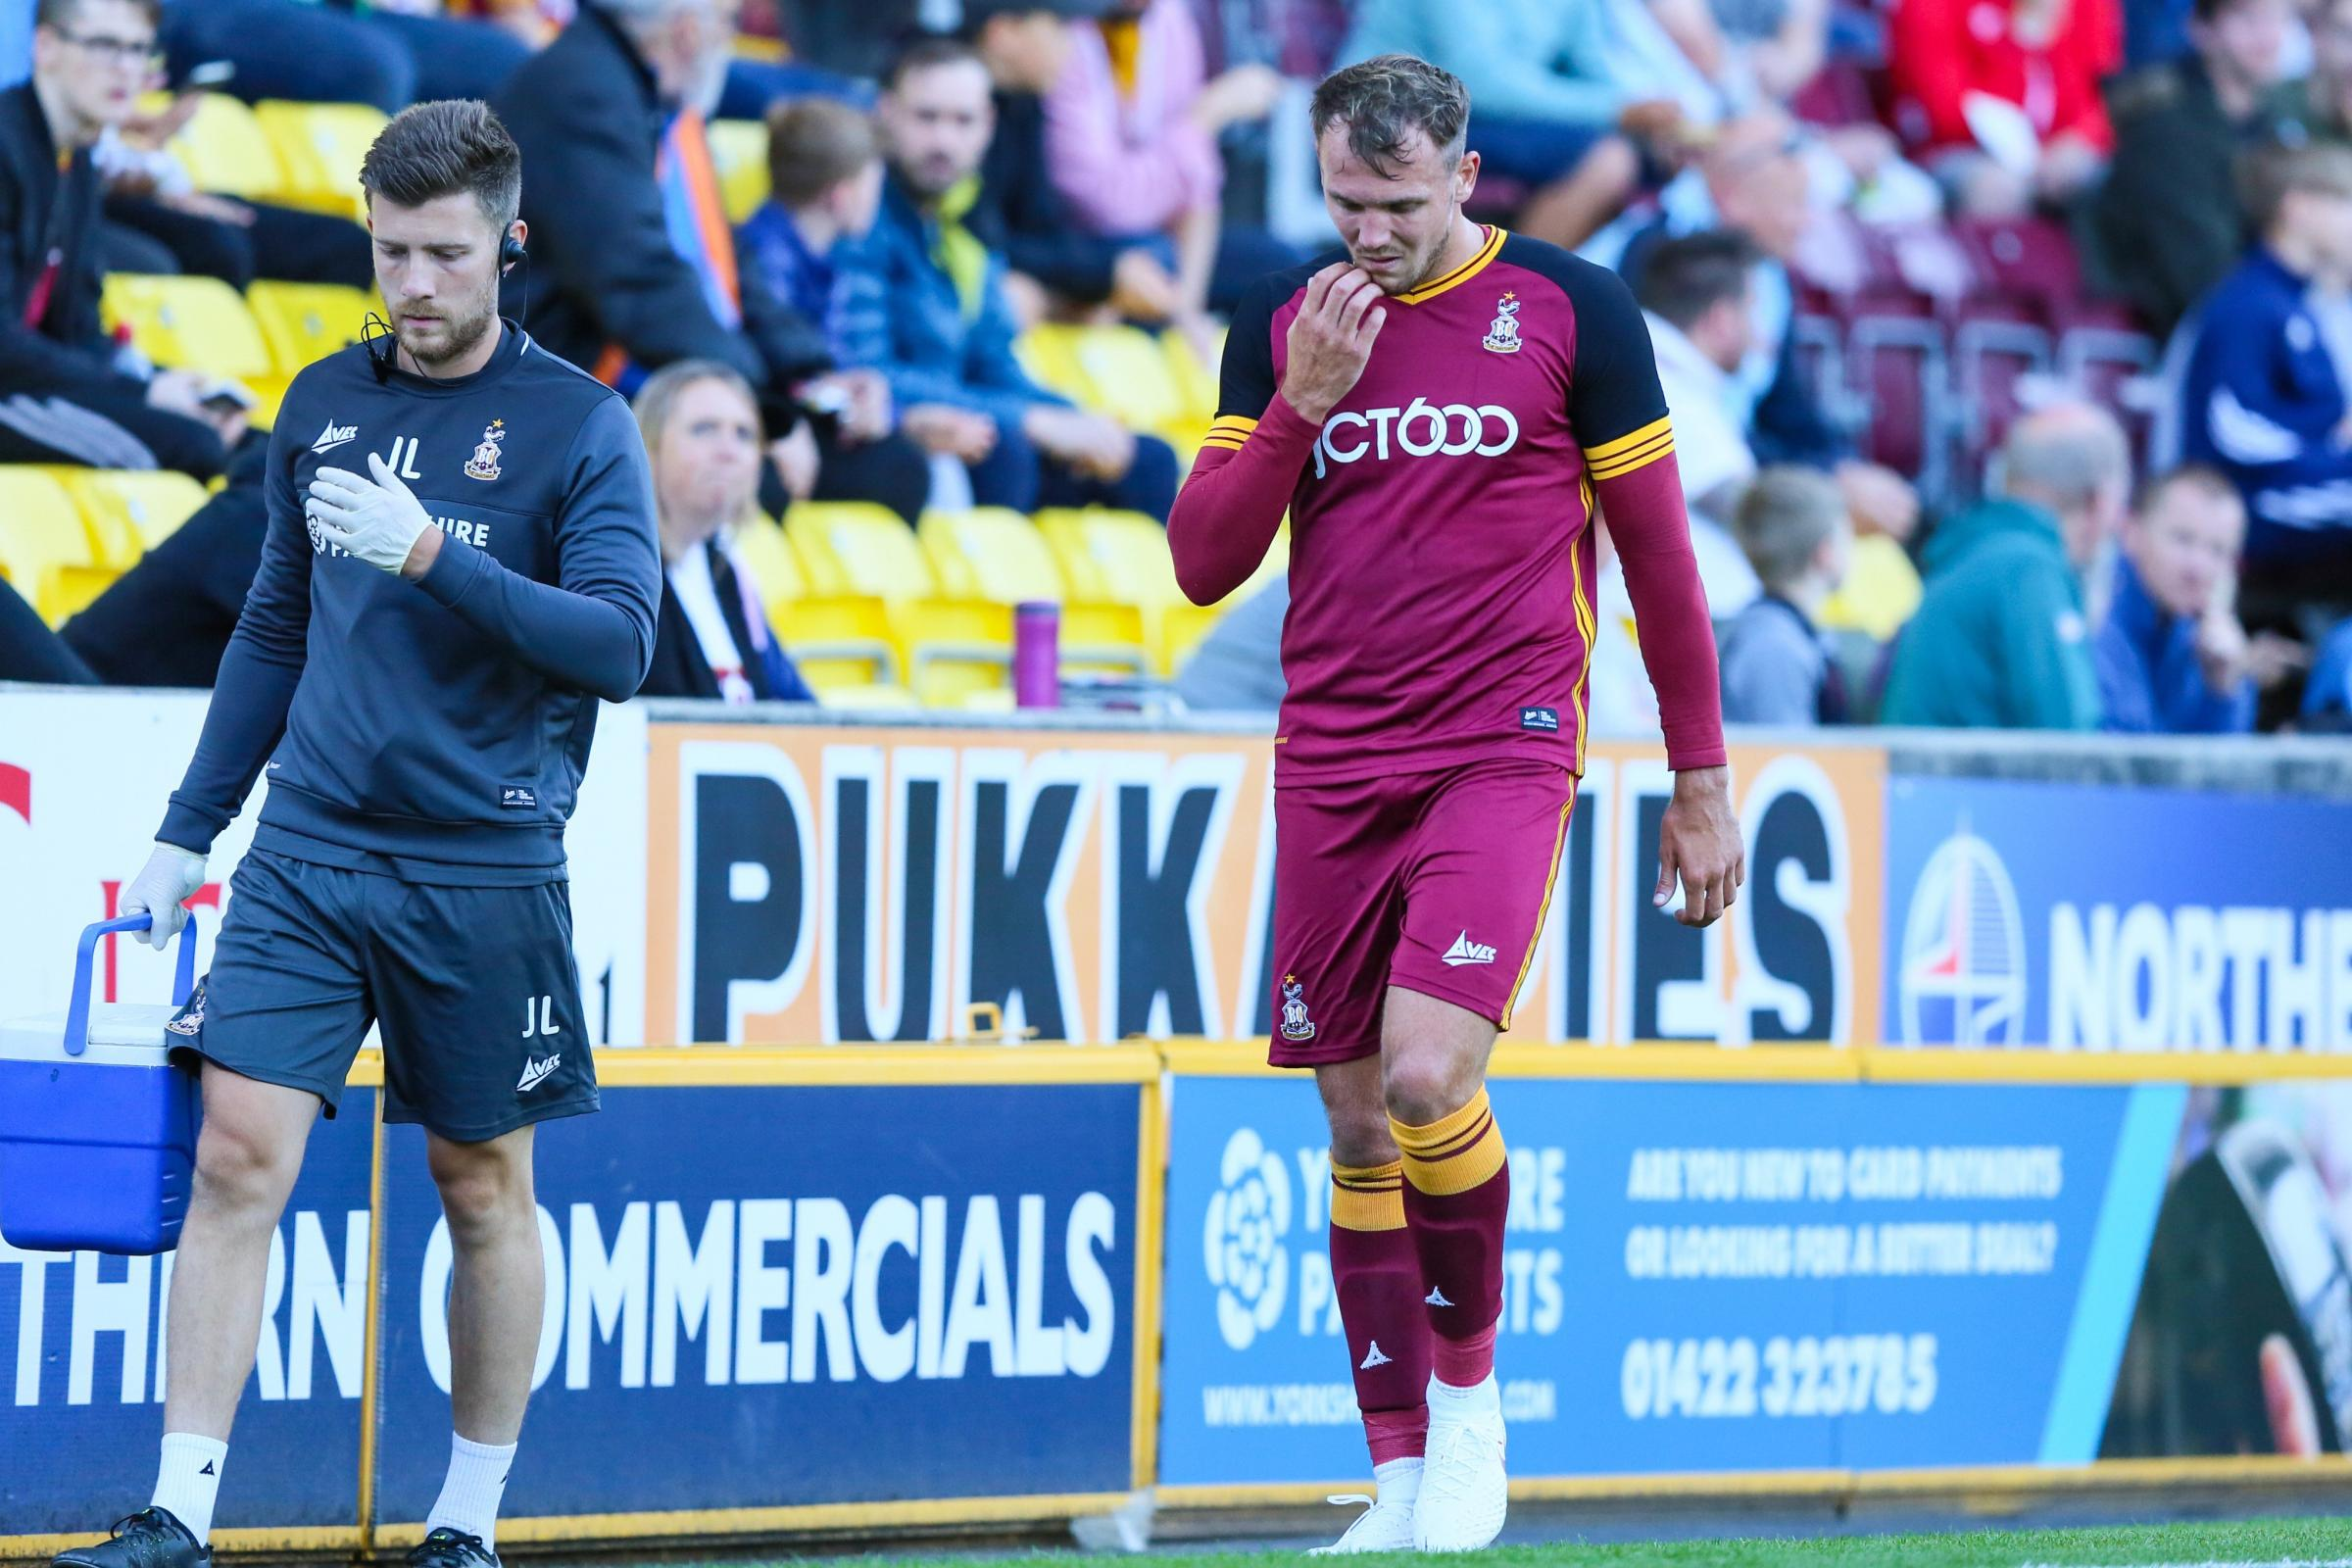 Bantams v Sheffield United: Charlie Wyke hobbles off with a suspected recurrence of his knee injury after just eight minutes  Pictures: Tom Gadd